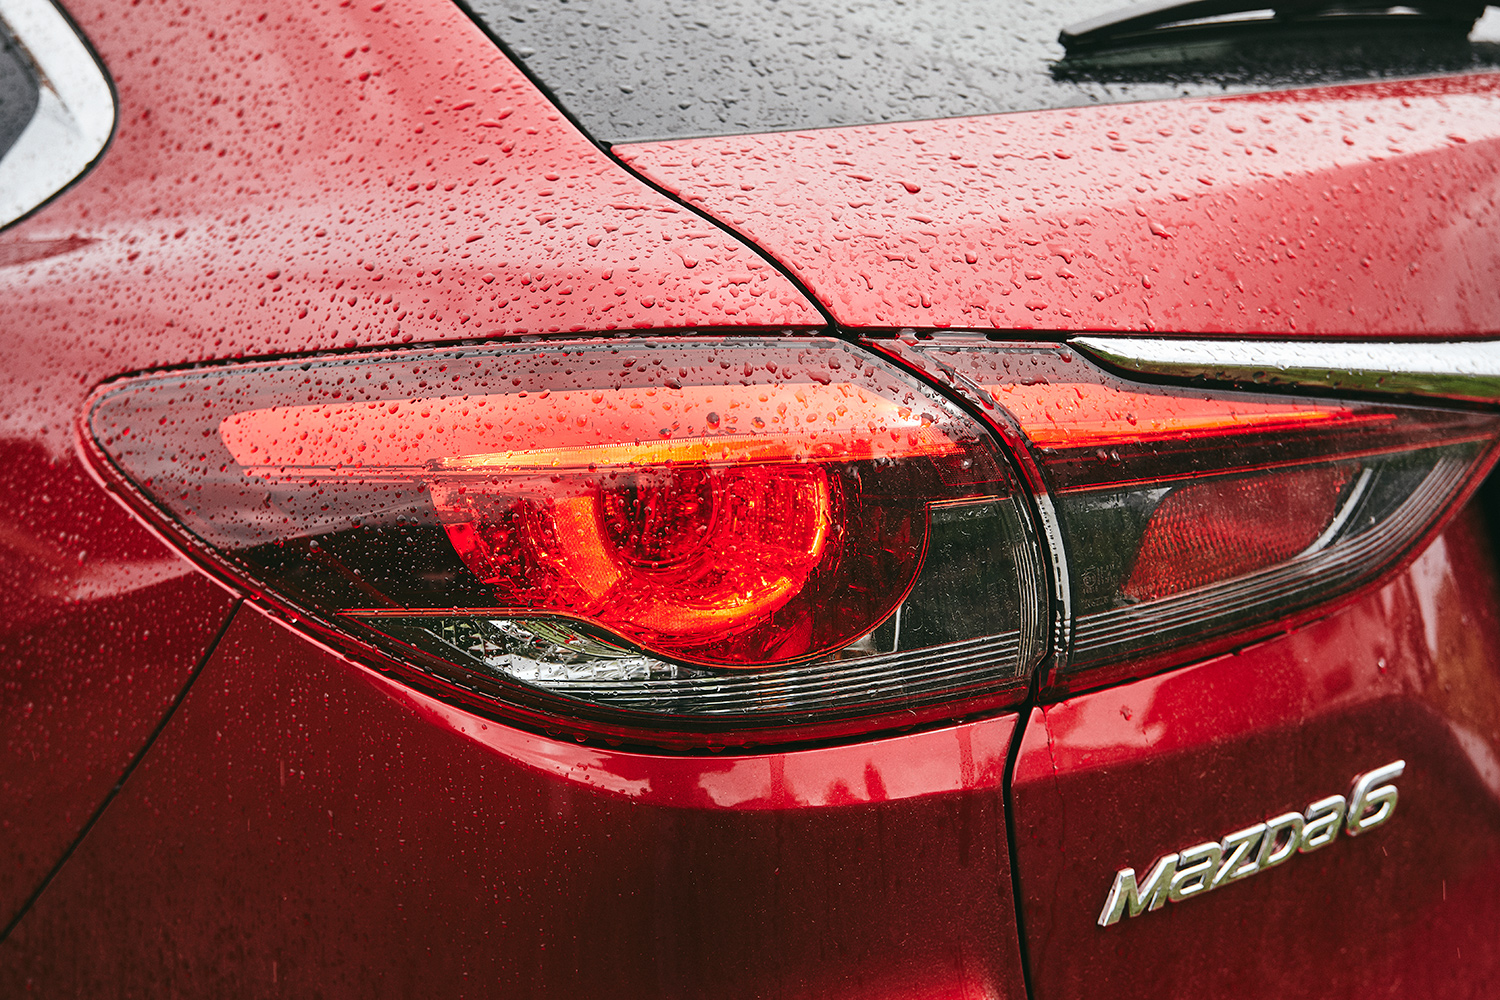 Architecture and automotive photography for Mazda